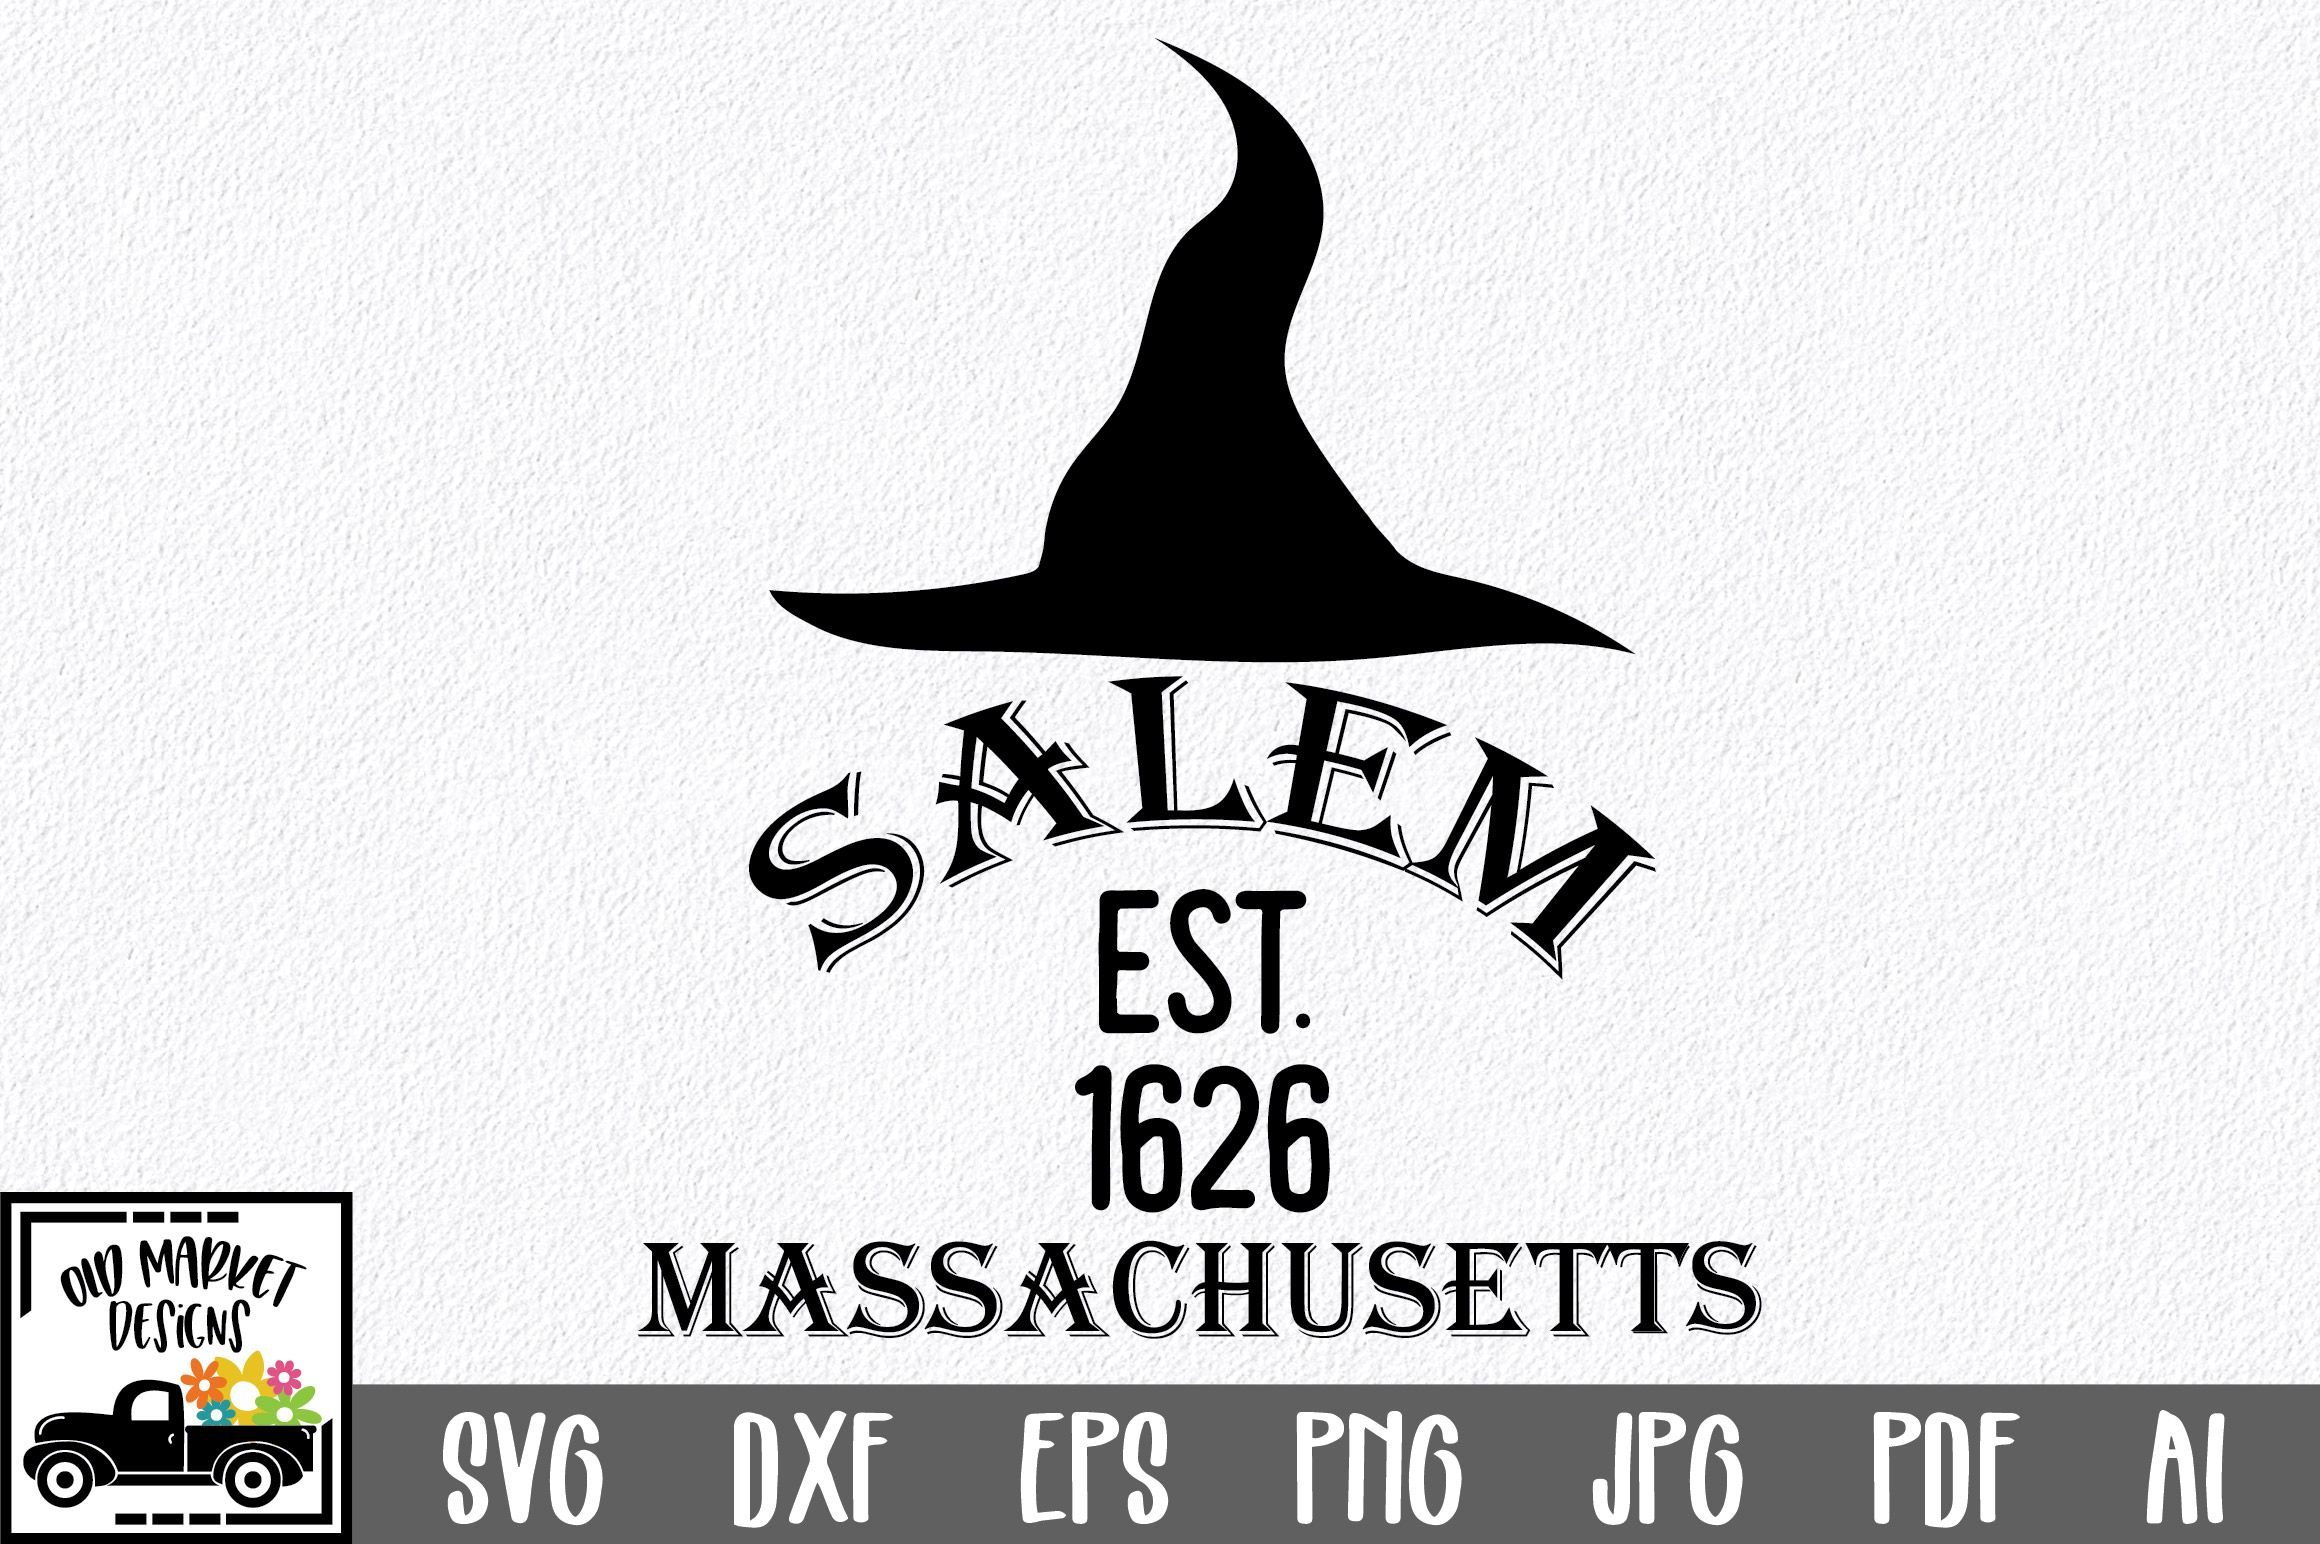 Salem Massachusetts (Graphic) by oldmarketdesigns